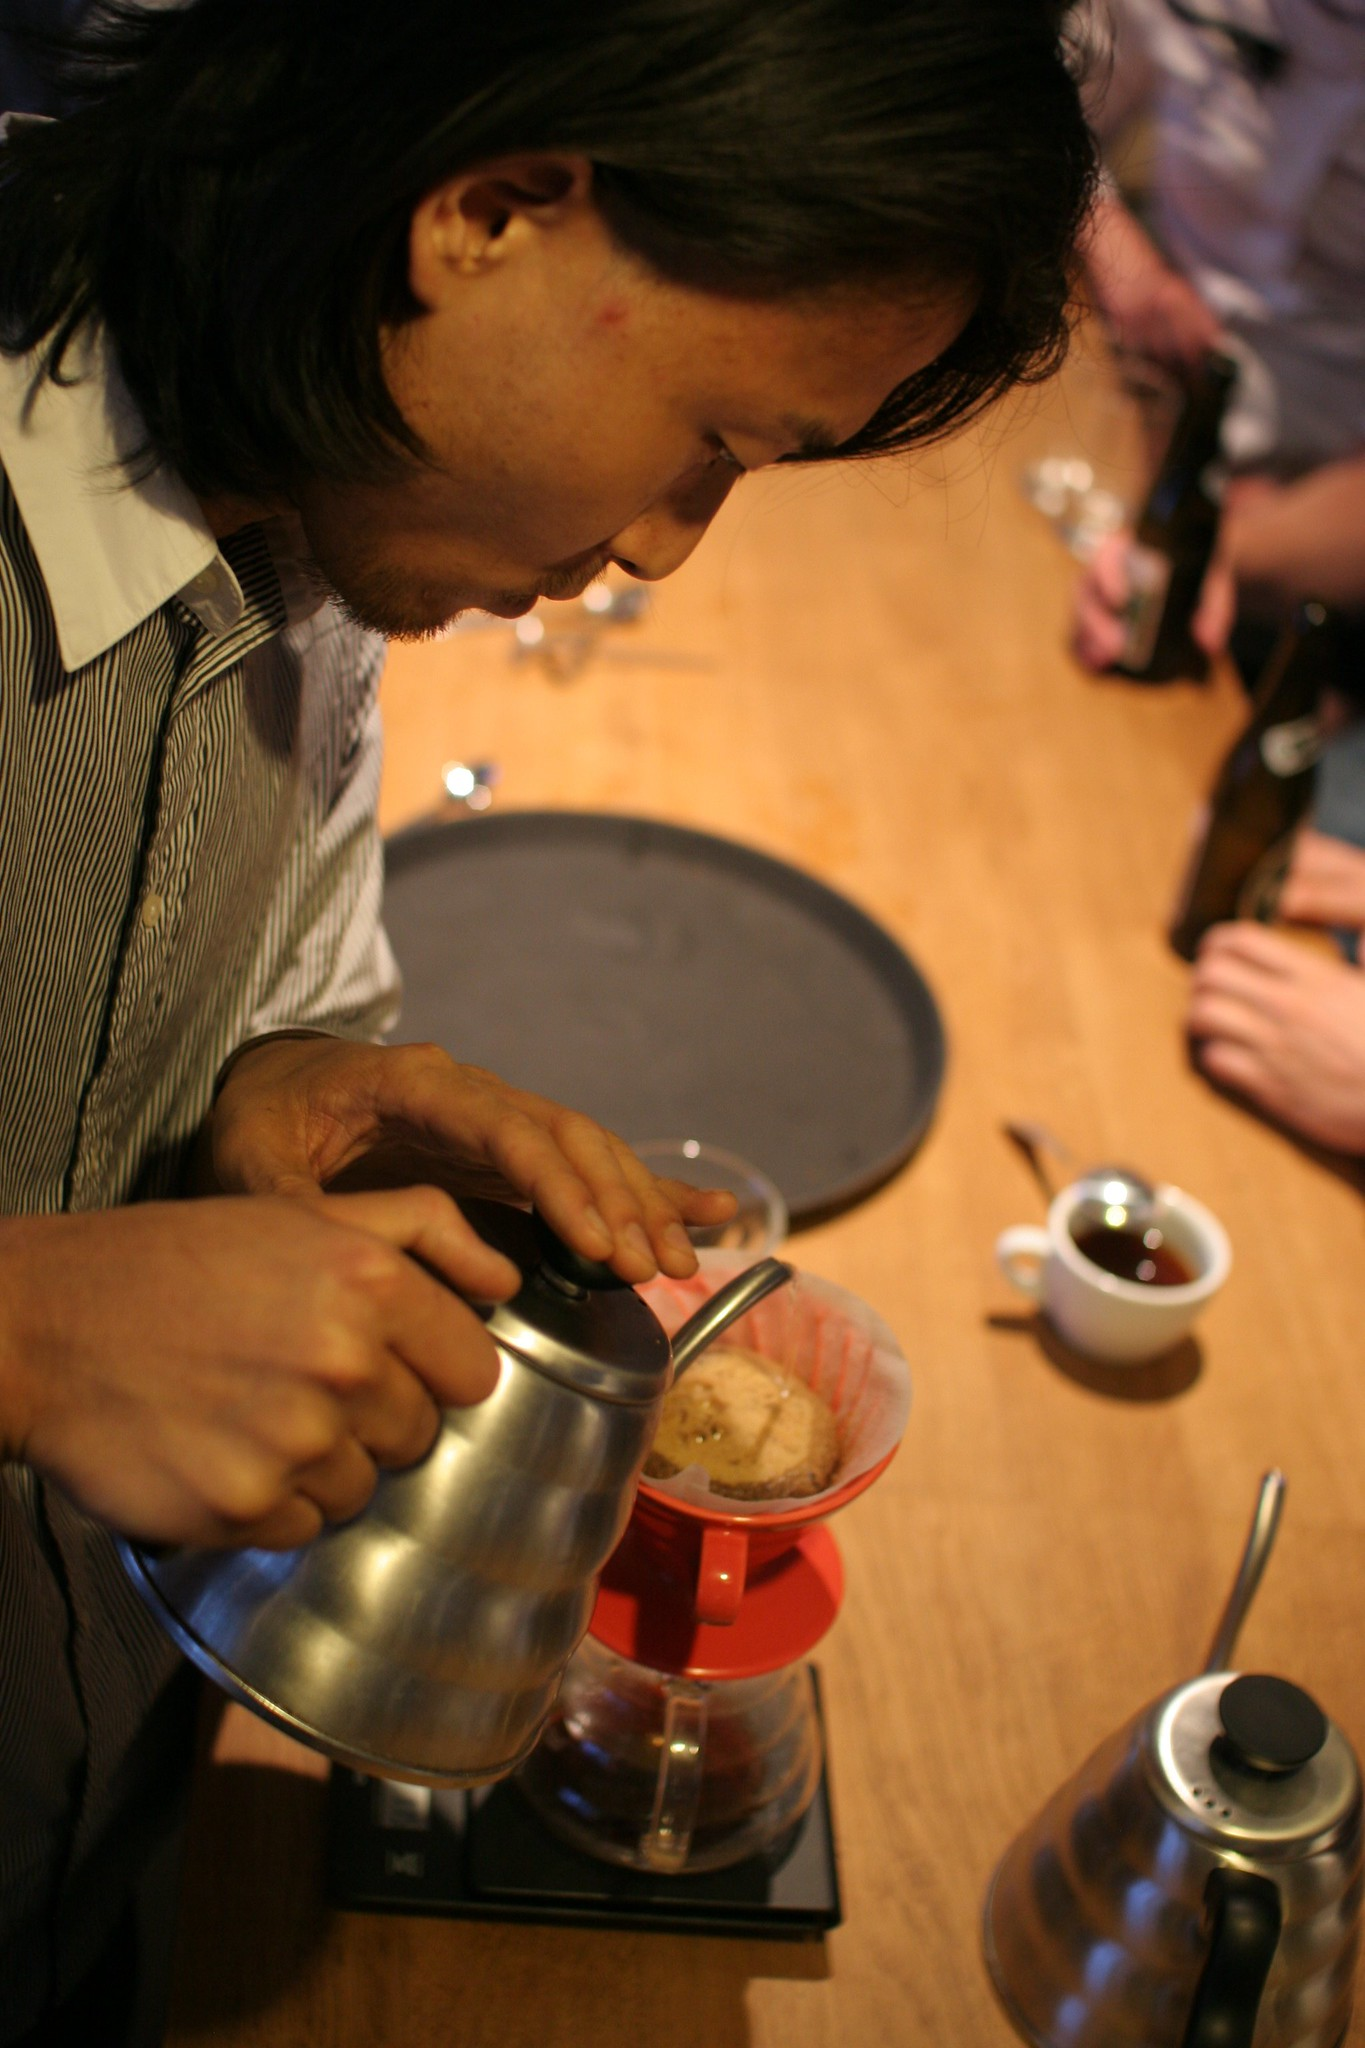 Winner: Nobuaki Matsui, or just Nobu - from Democratic Coffee. Winner of the Black Coffee Brew Down June 21st 2013.